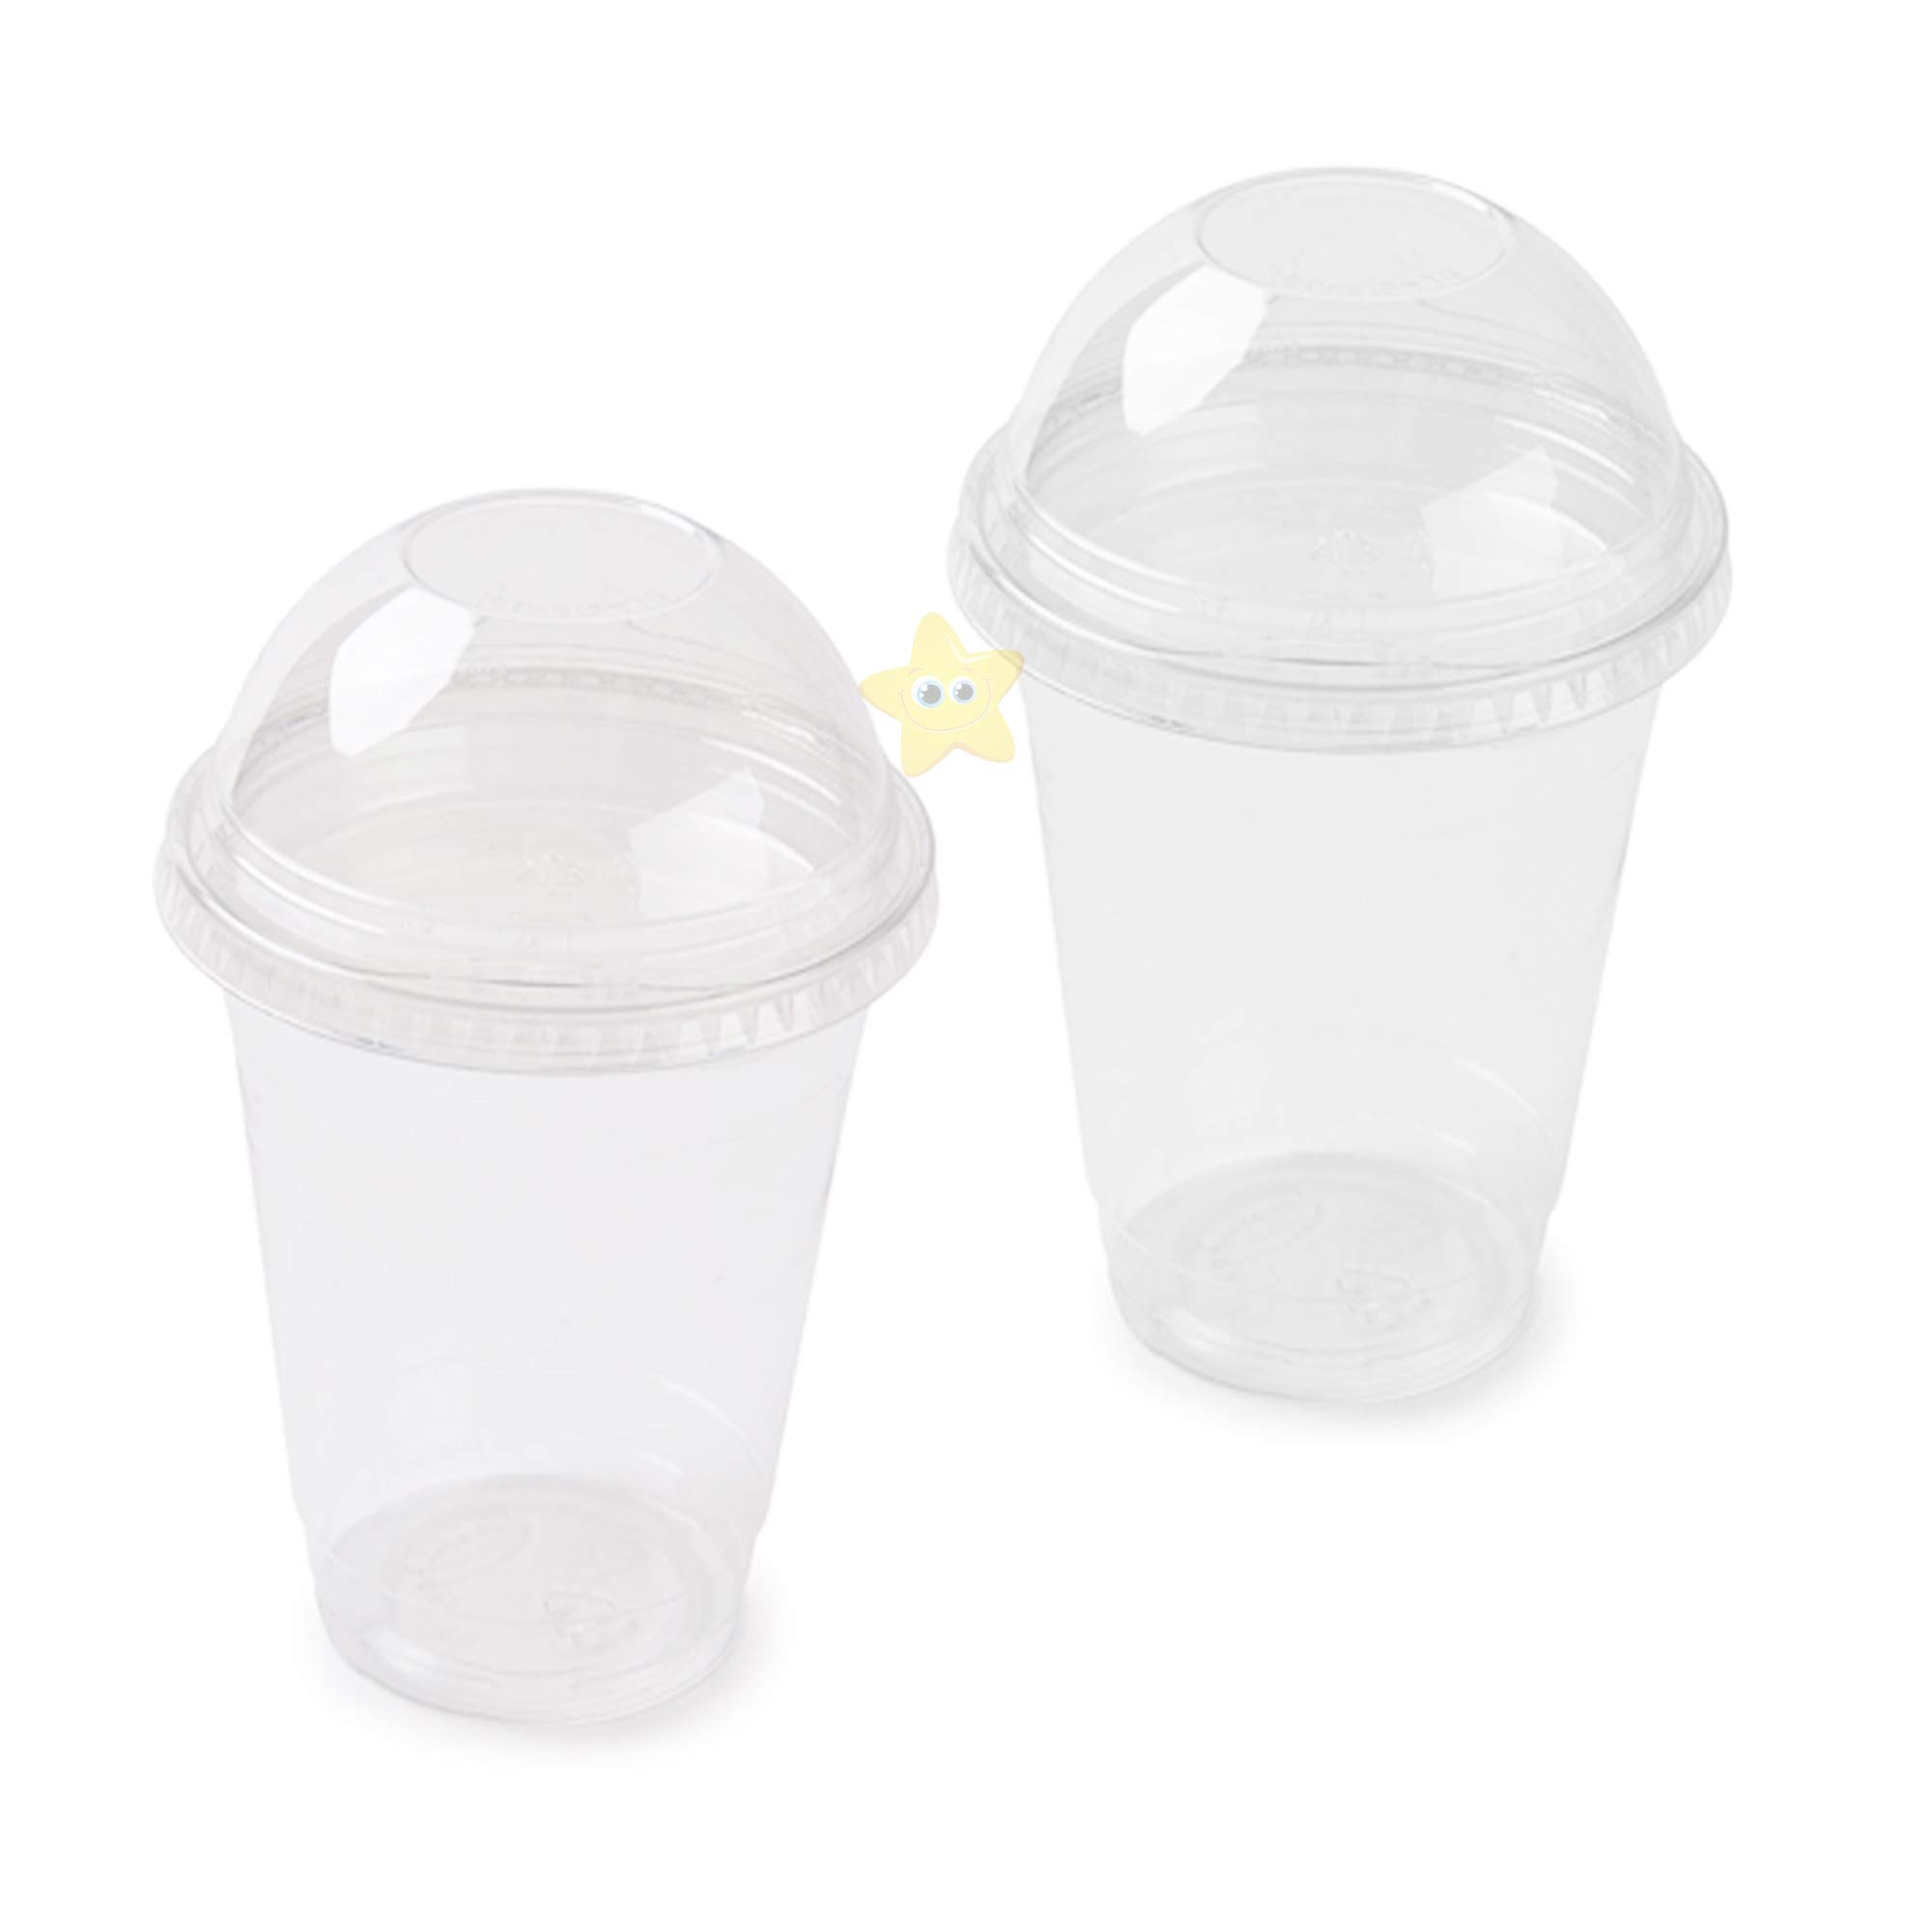 milkshakes straws with 7.5mm bore AIOS Avenue Smoothie Cups with Dome Lids and Straws iced drinks ideal for thick smoothies and milkshakes. Pack of 50 coffees juices Smoothies 400ml//14oz